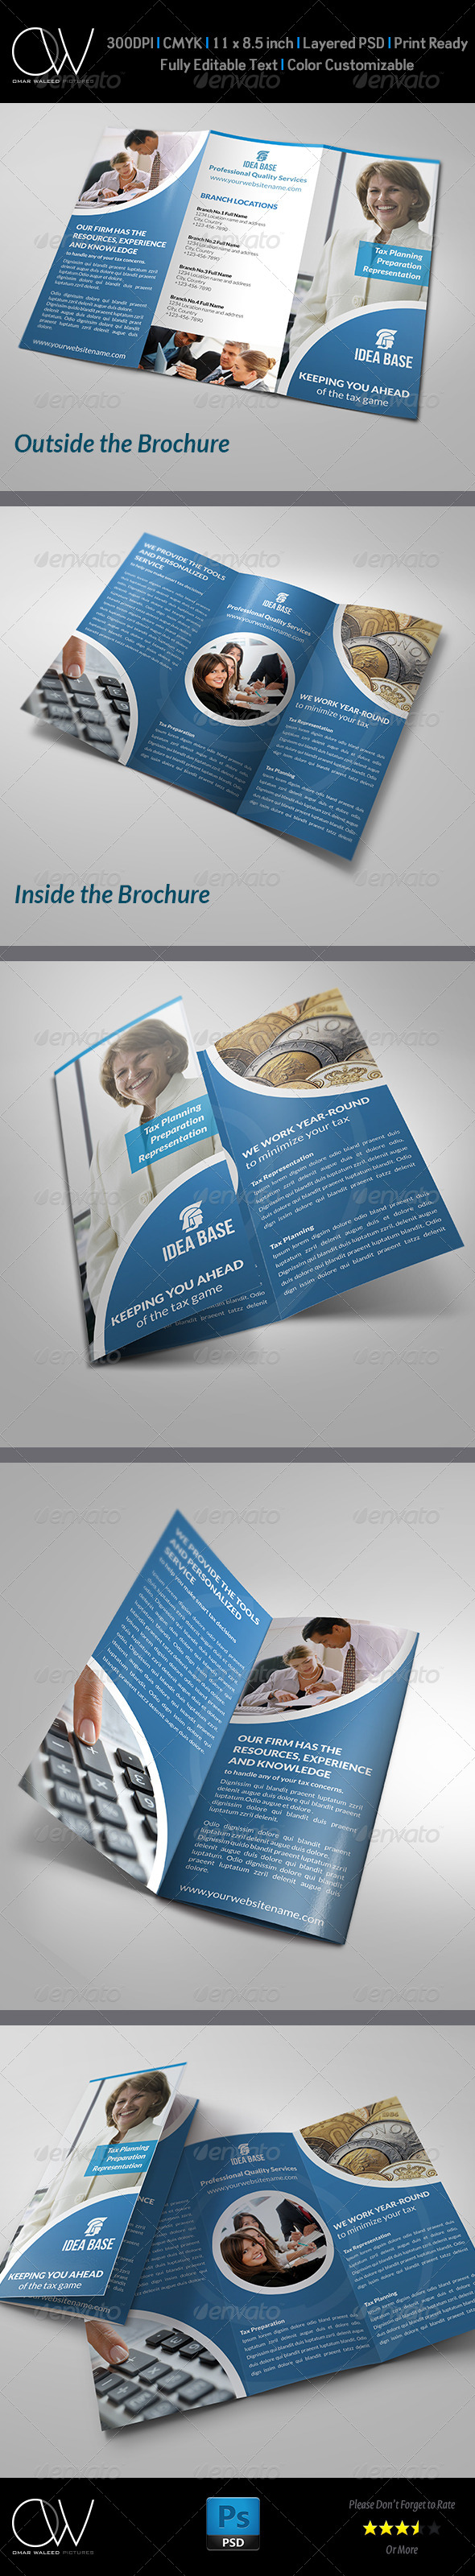 Accounting Services Tri-Fold Brochure